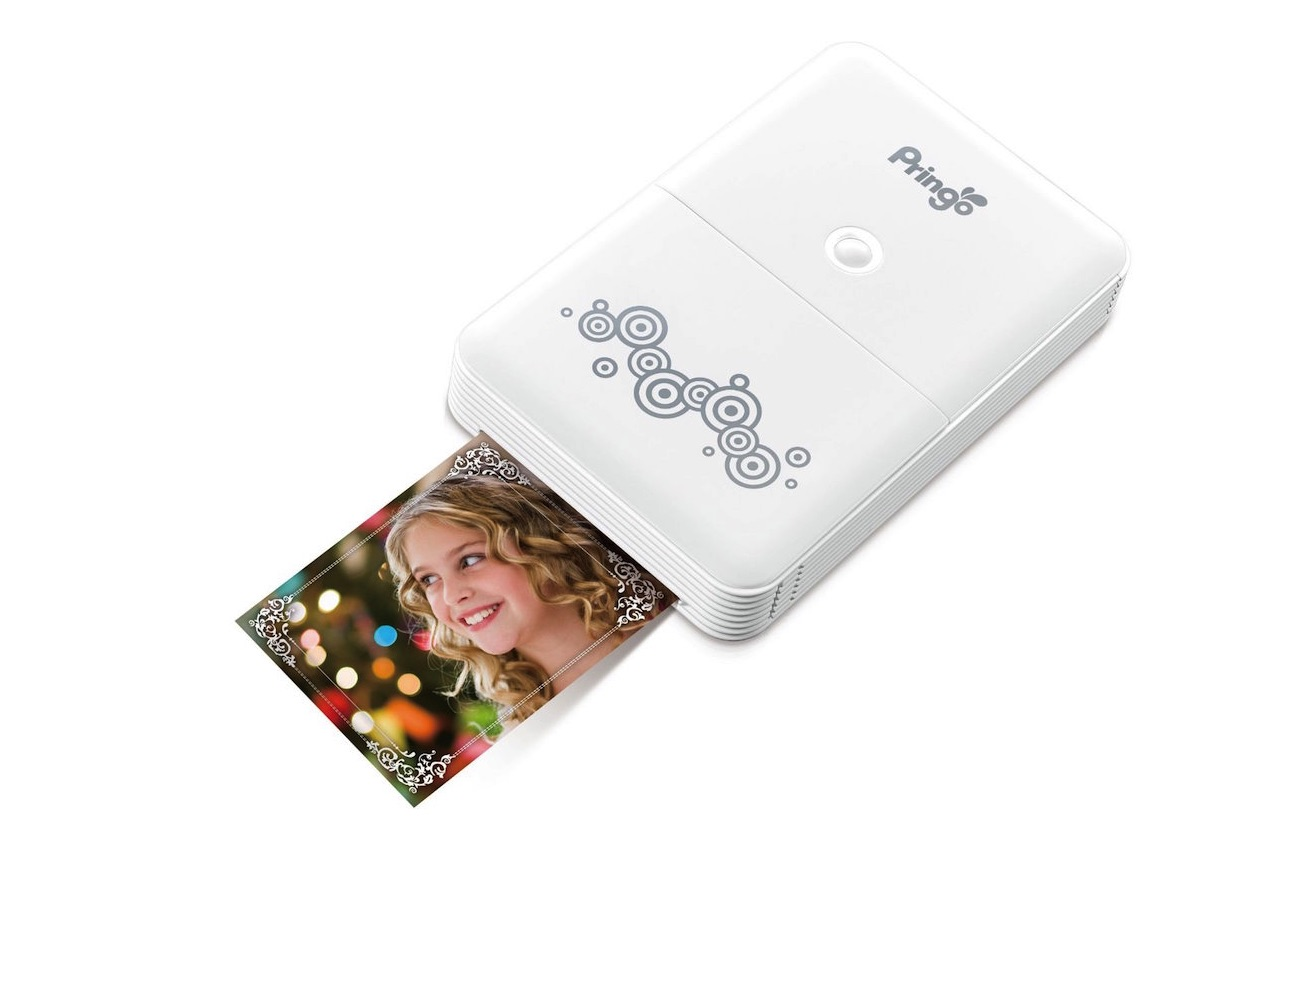 Pringo Portable Photo Printer